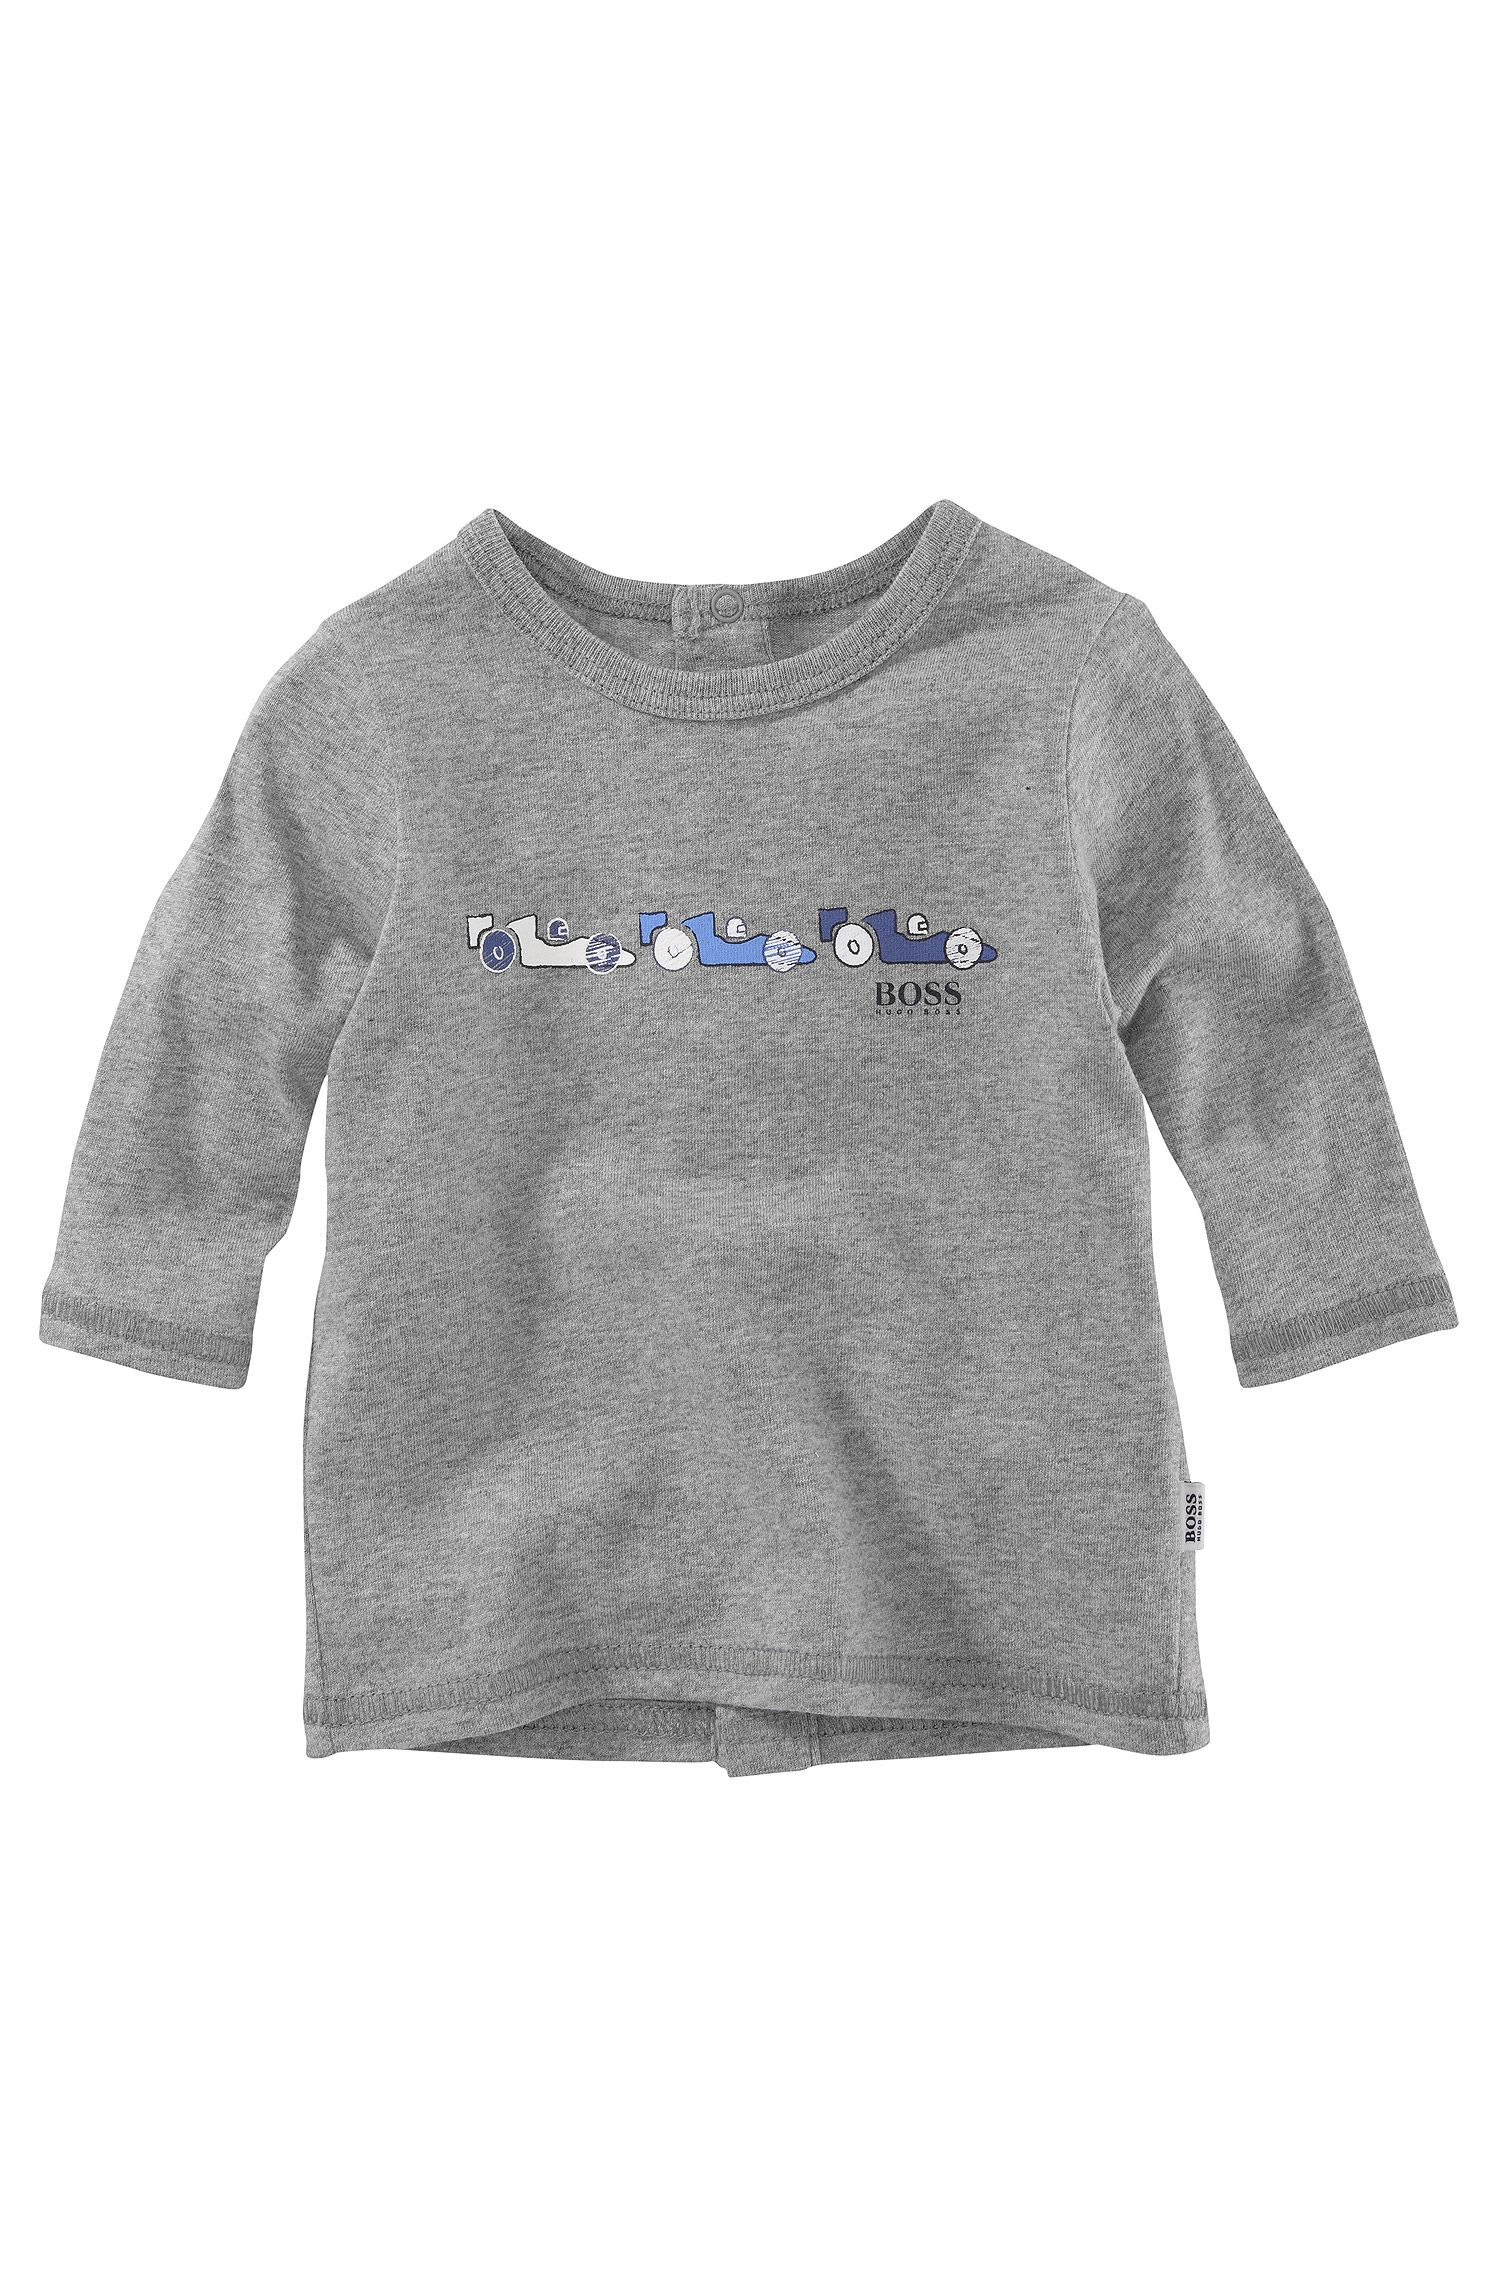 'J95114' | Infant Cotton Crewneck Graphic Sweater